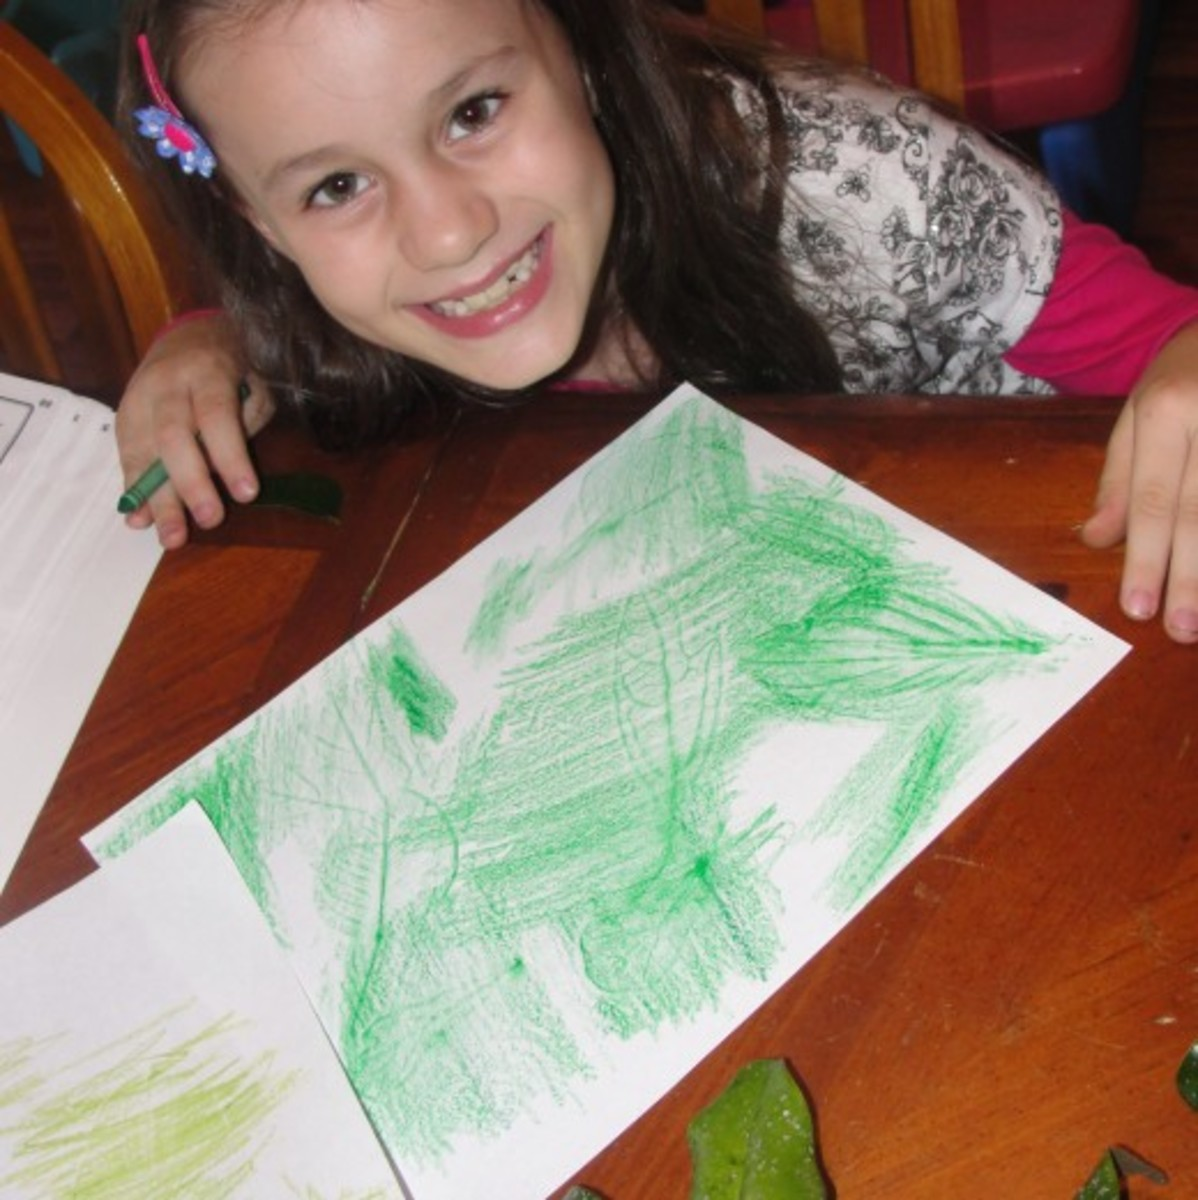 Creating Deciduous Forest Leaf Rubbings is one of the activities we did this week while learning about land biomes using the above lesson.